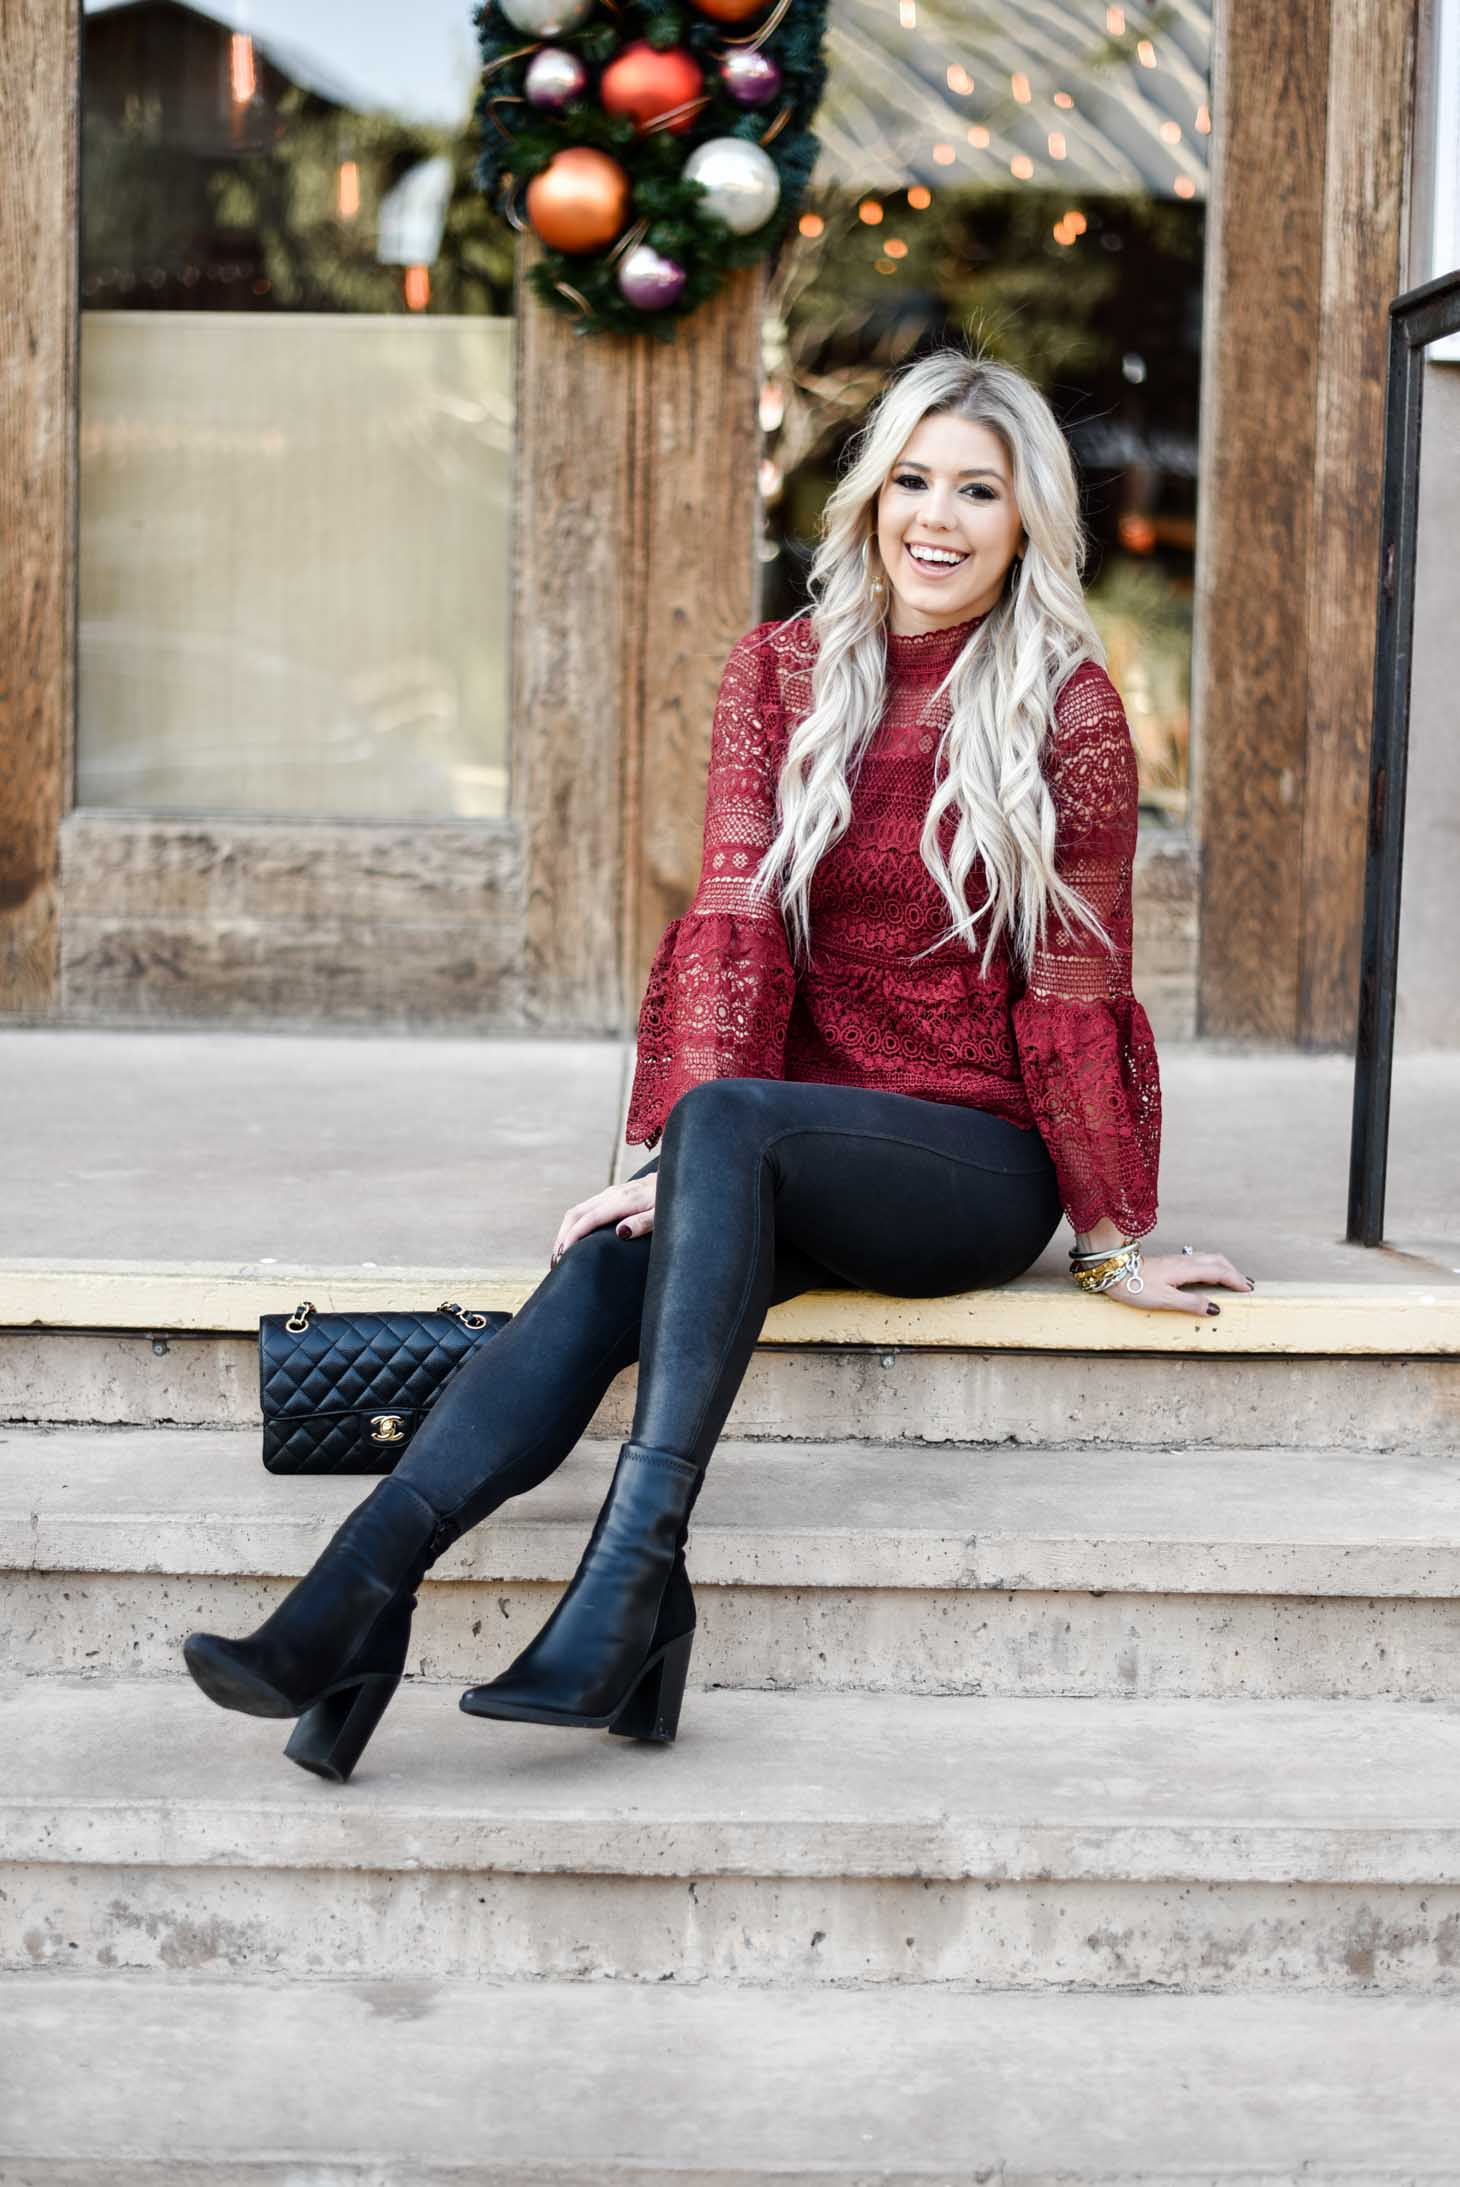 Erin Elizabeth of Wink and a Twirl shares the perfect comfortable holiday look with Spanx leggings and a fun holiday top from Chicwish